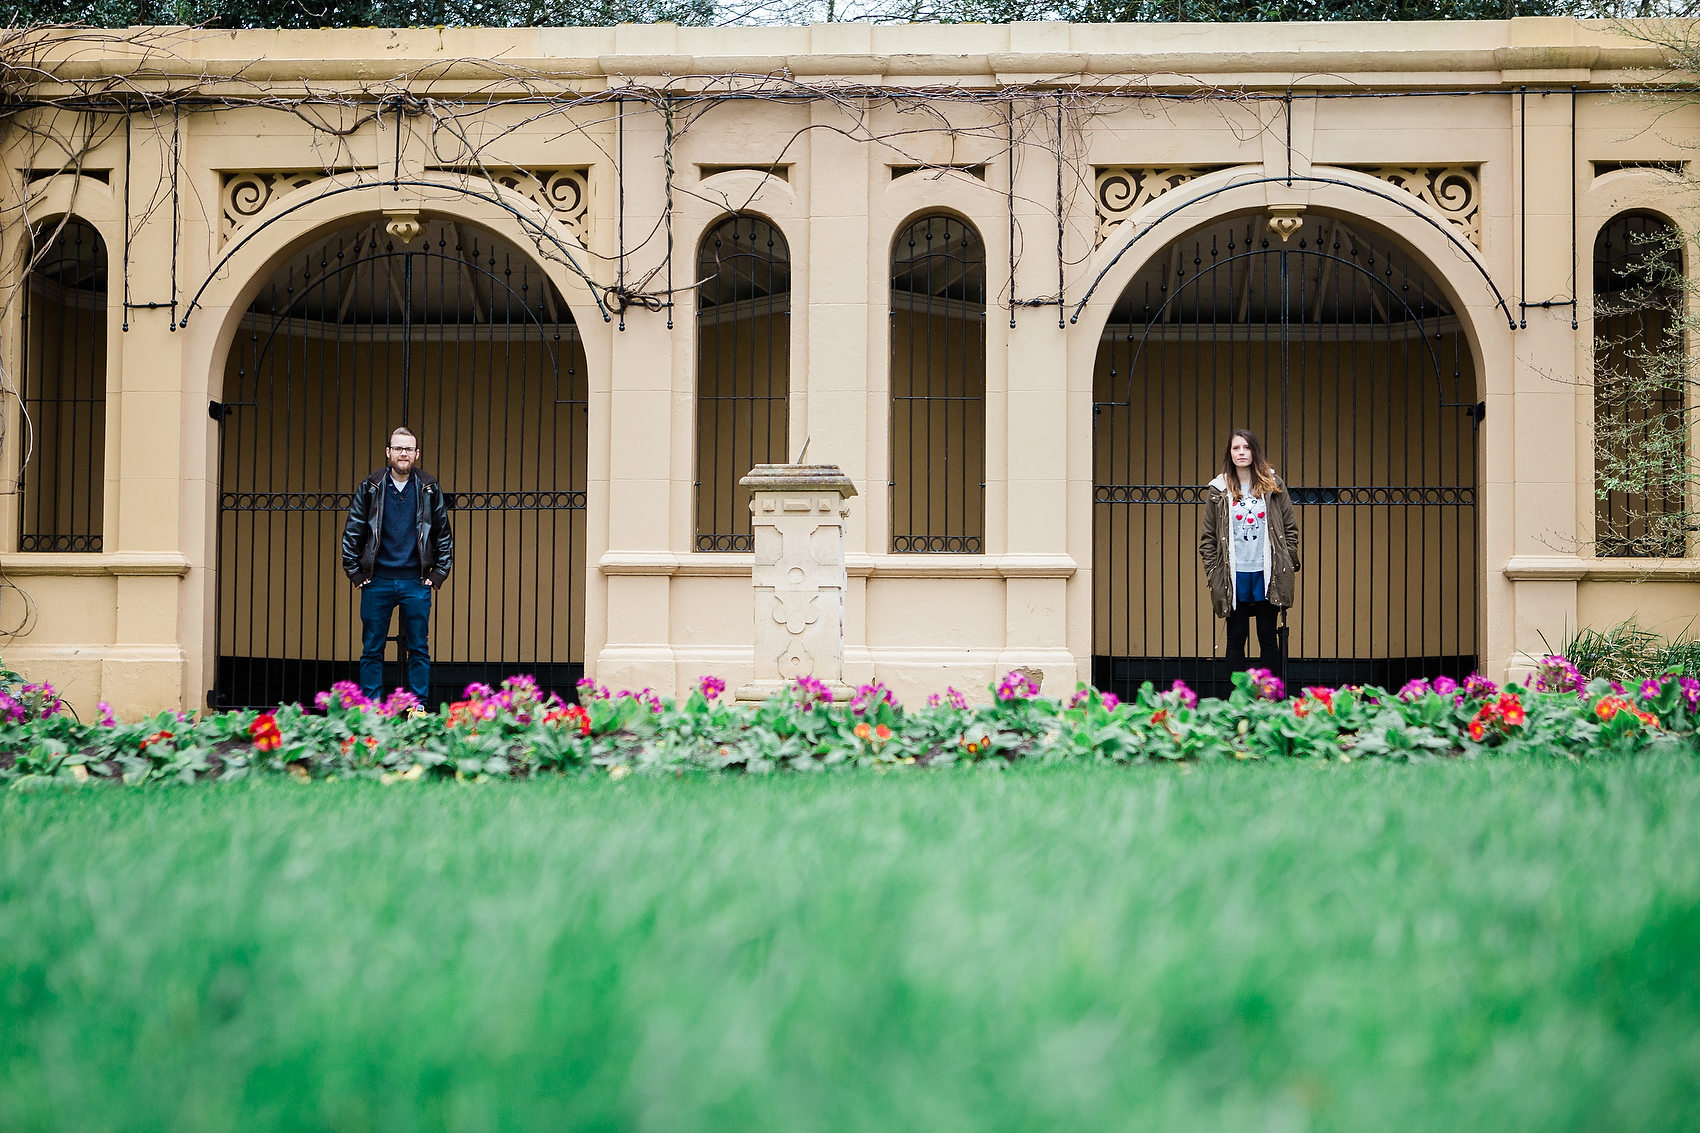 quirky photo in jephson gardens bride and groom look cool